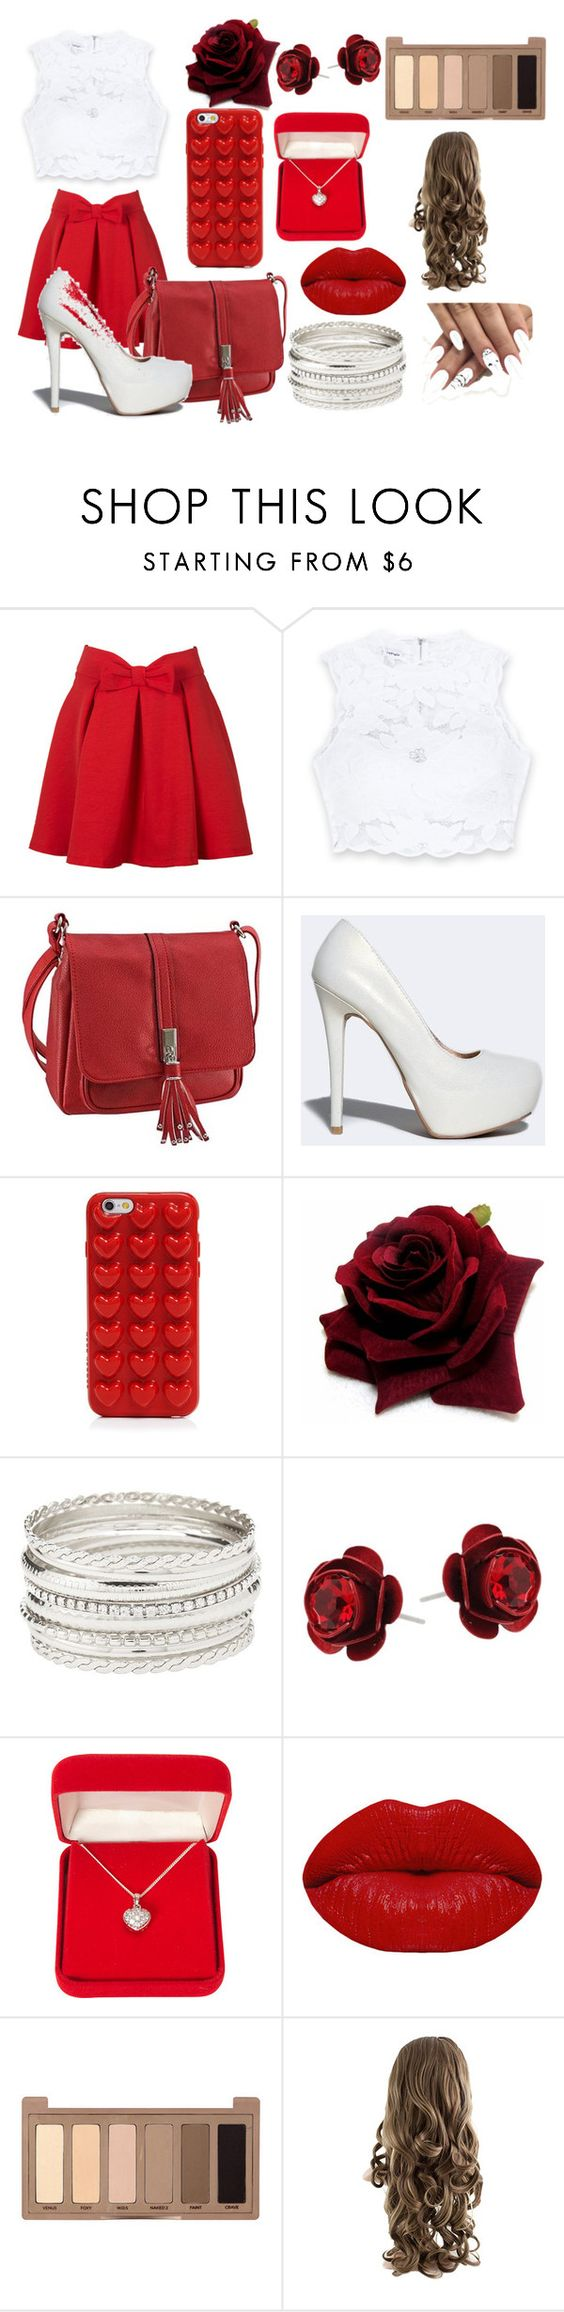 """""""Red Fire"""" by demetriyahlane on Polyvore featuring Bebe, Qupid, Marc Jacobs, Charlotte Russe, Michal Negrin, Alexa Starr, Winky Lux and Urban Decay"""